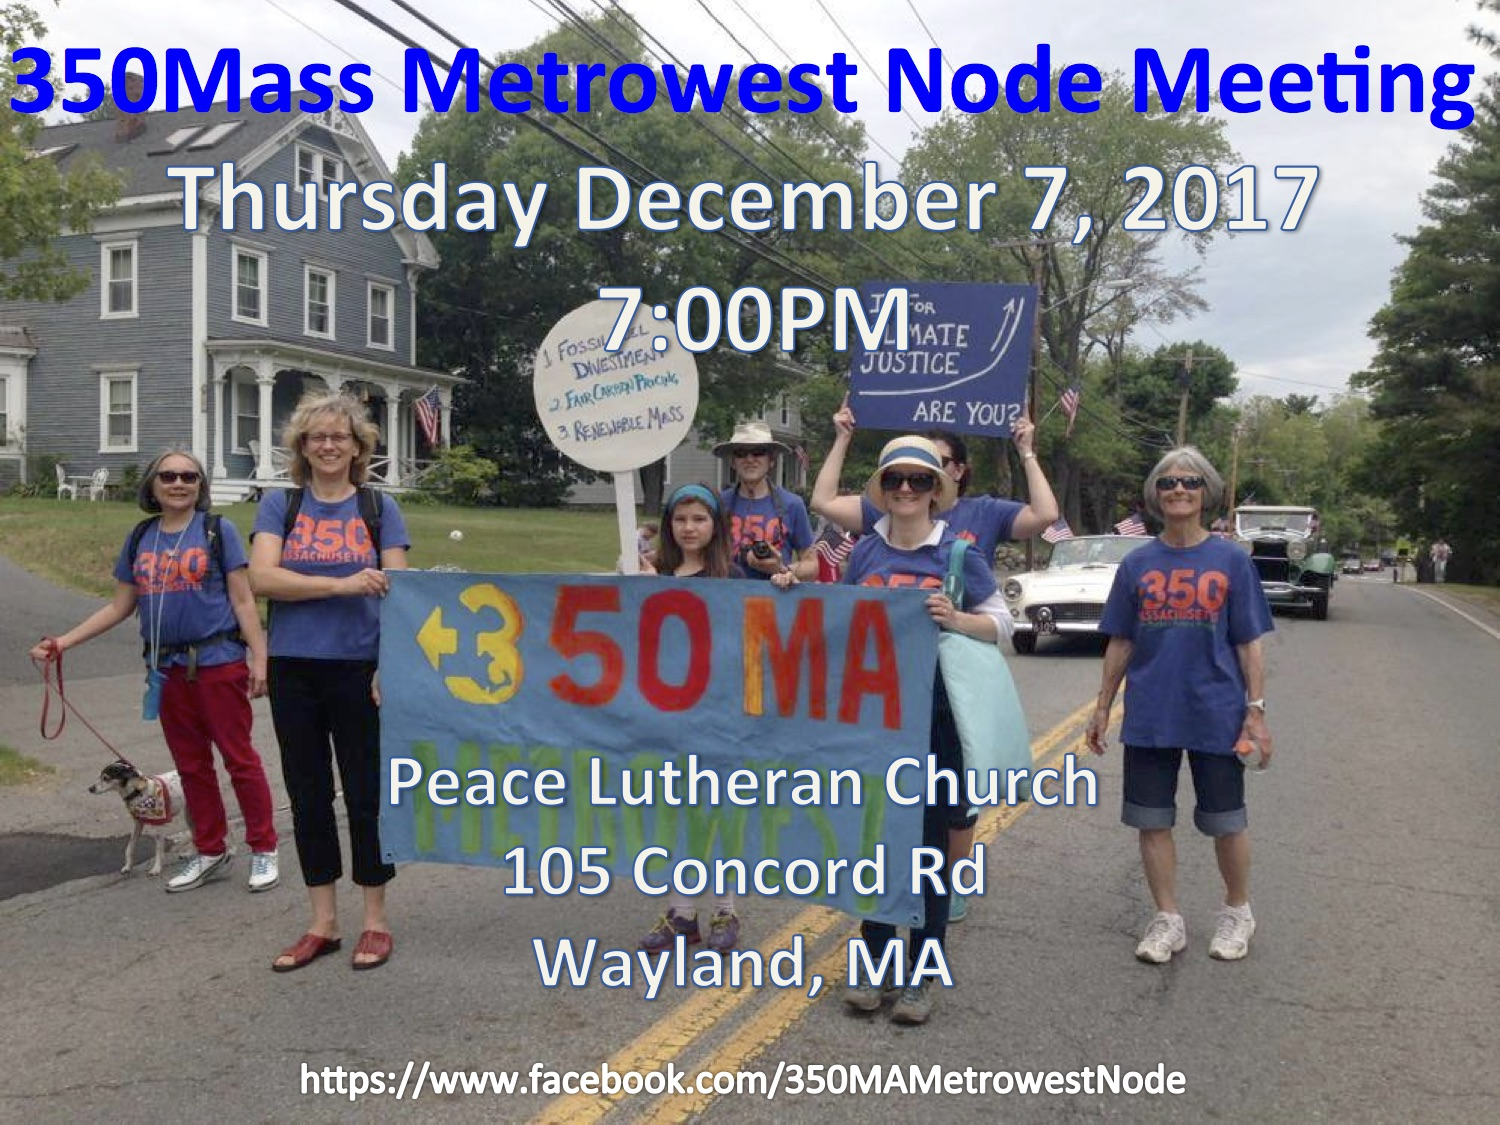 350Mass Metrowest Node December Meeting